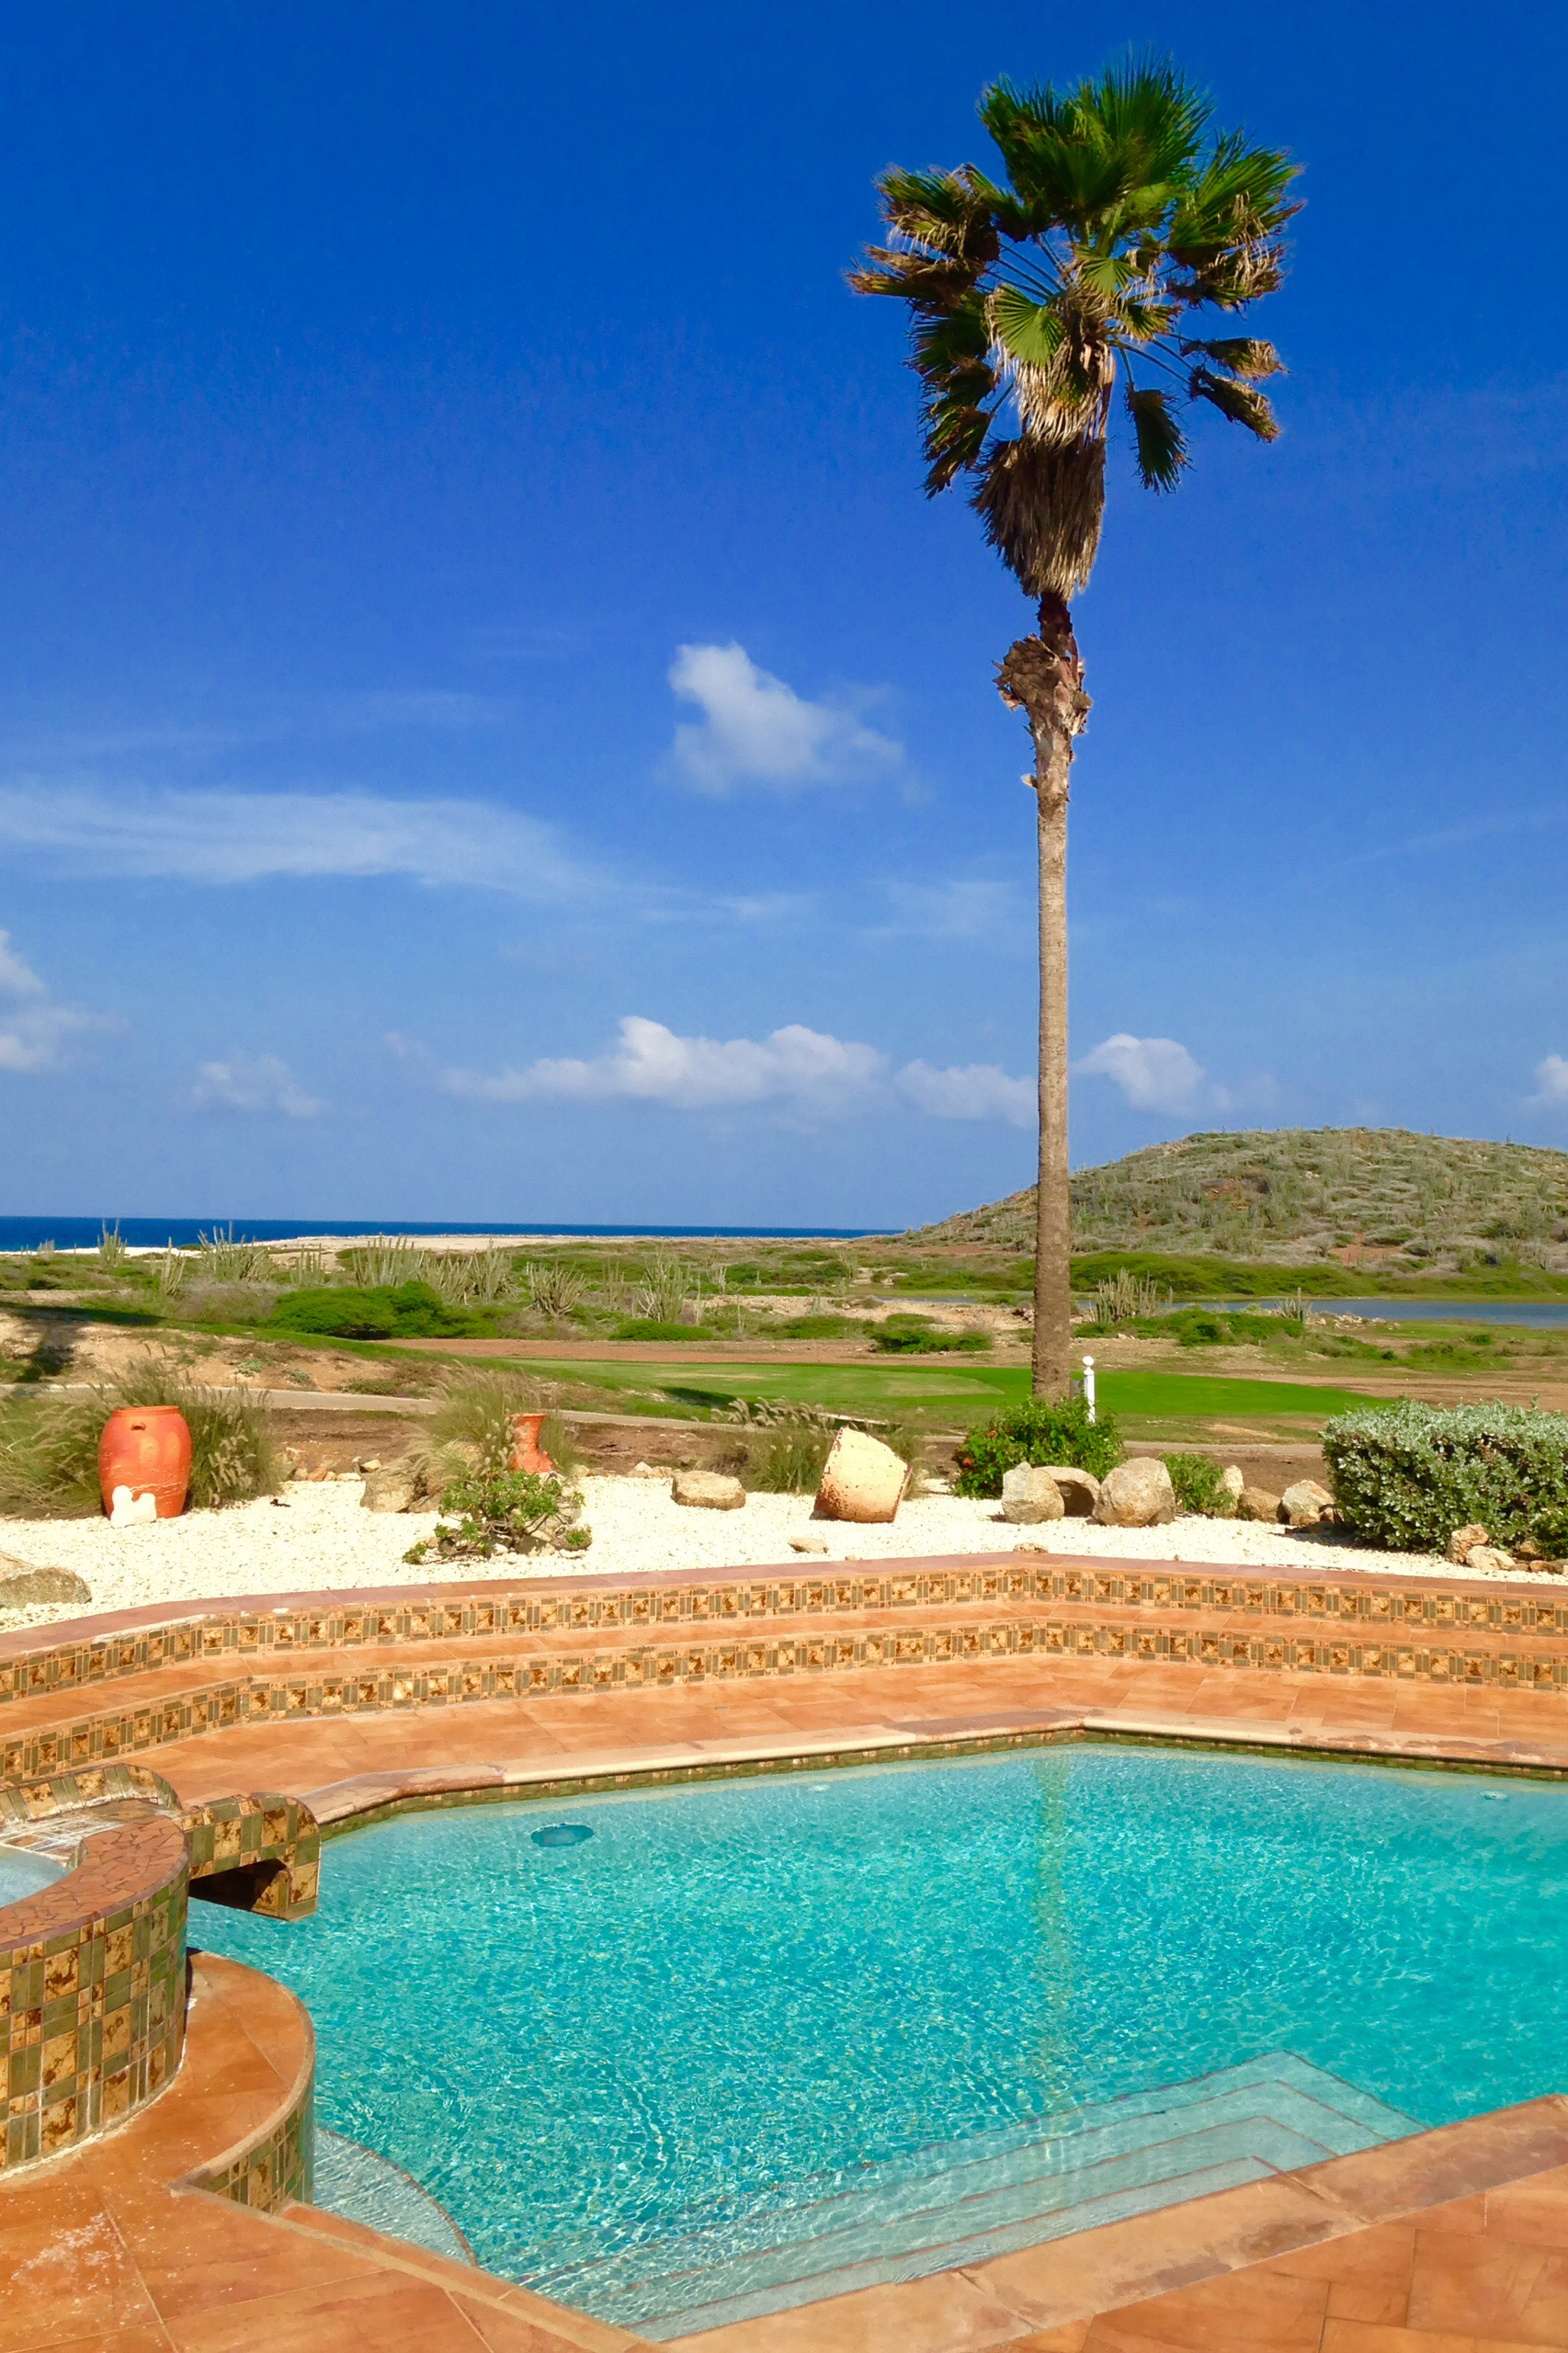 Additional photo for property listing at Million Dollar View Other Aruba, 阿鲁巴 阿鲁巴岛